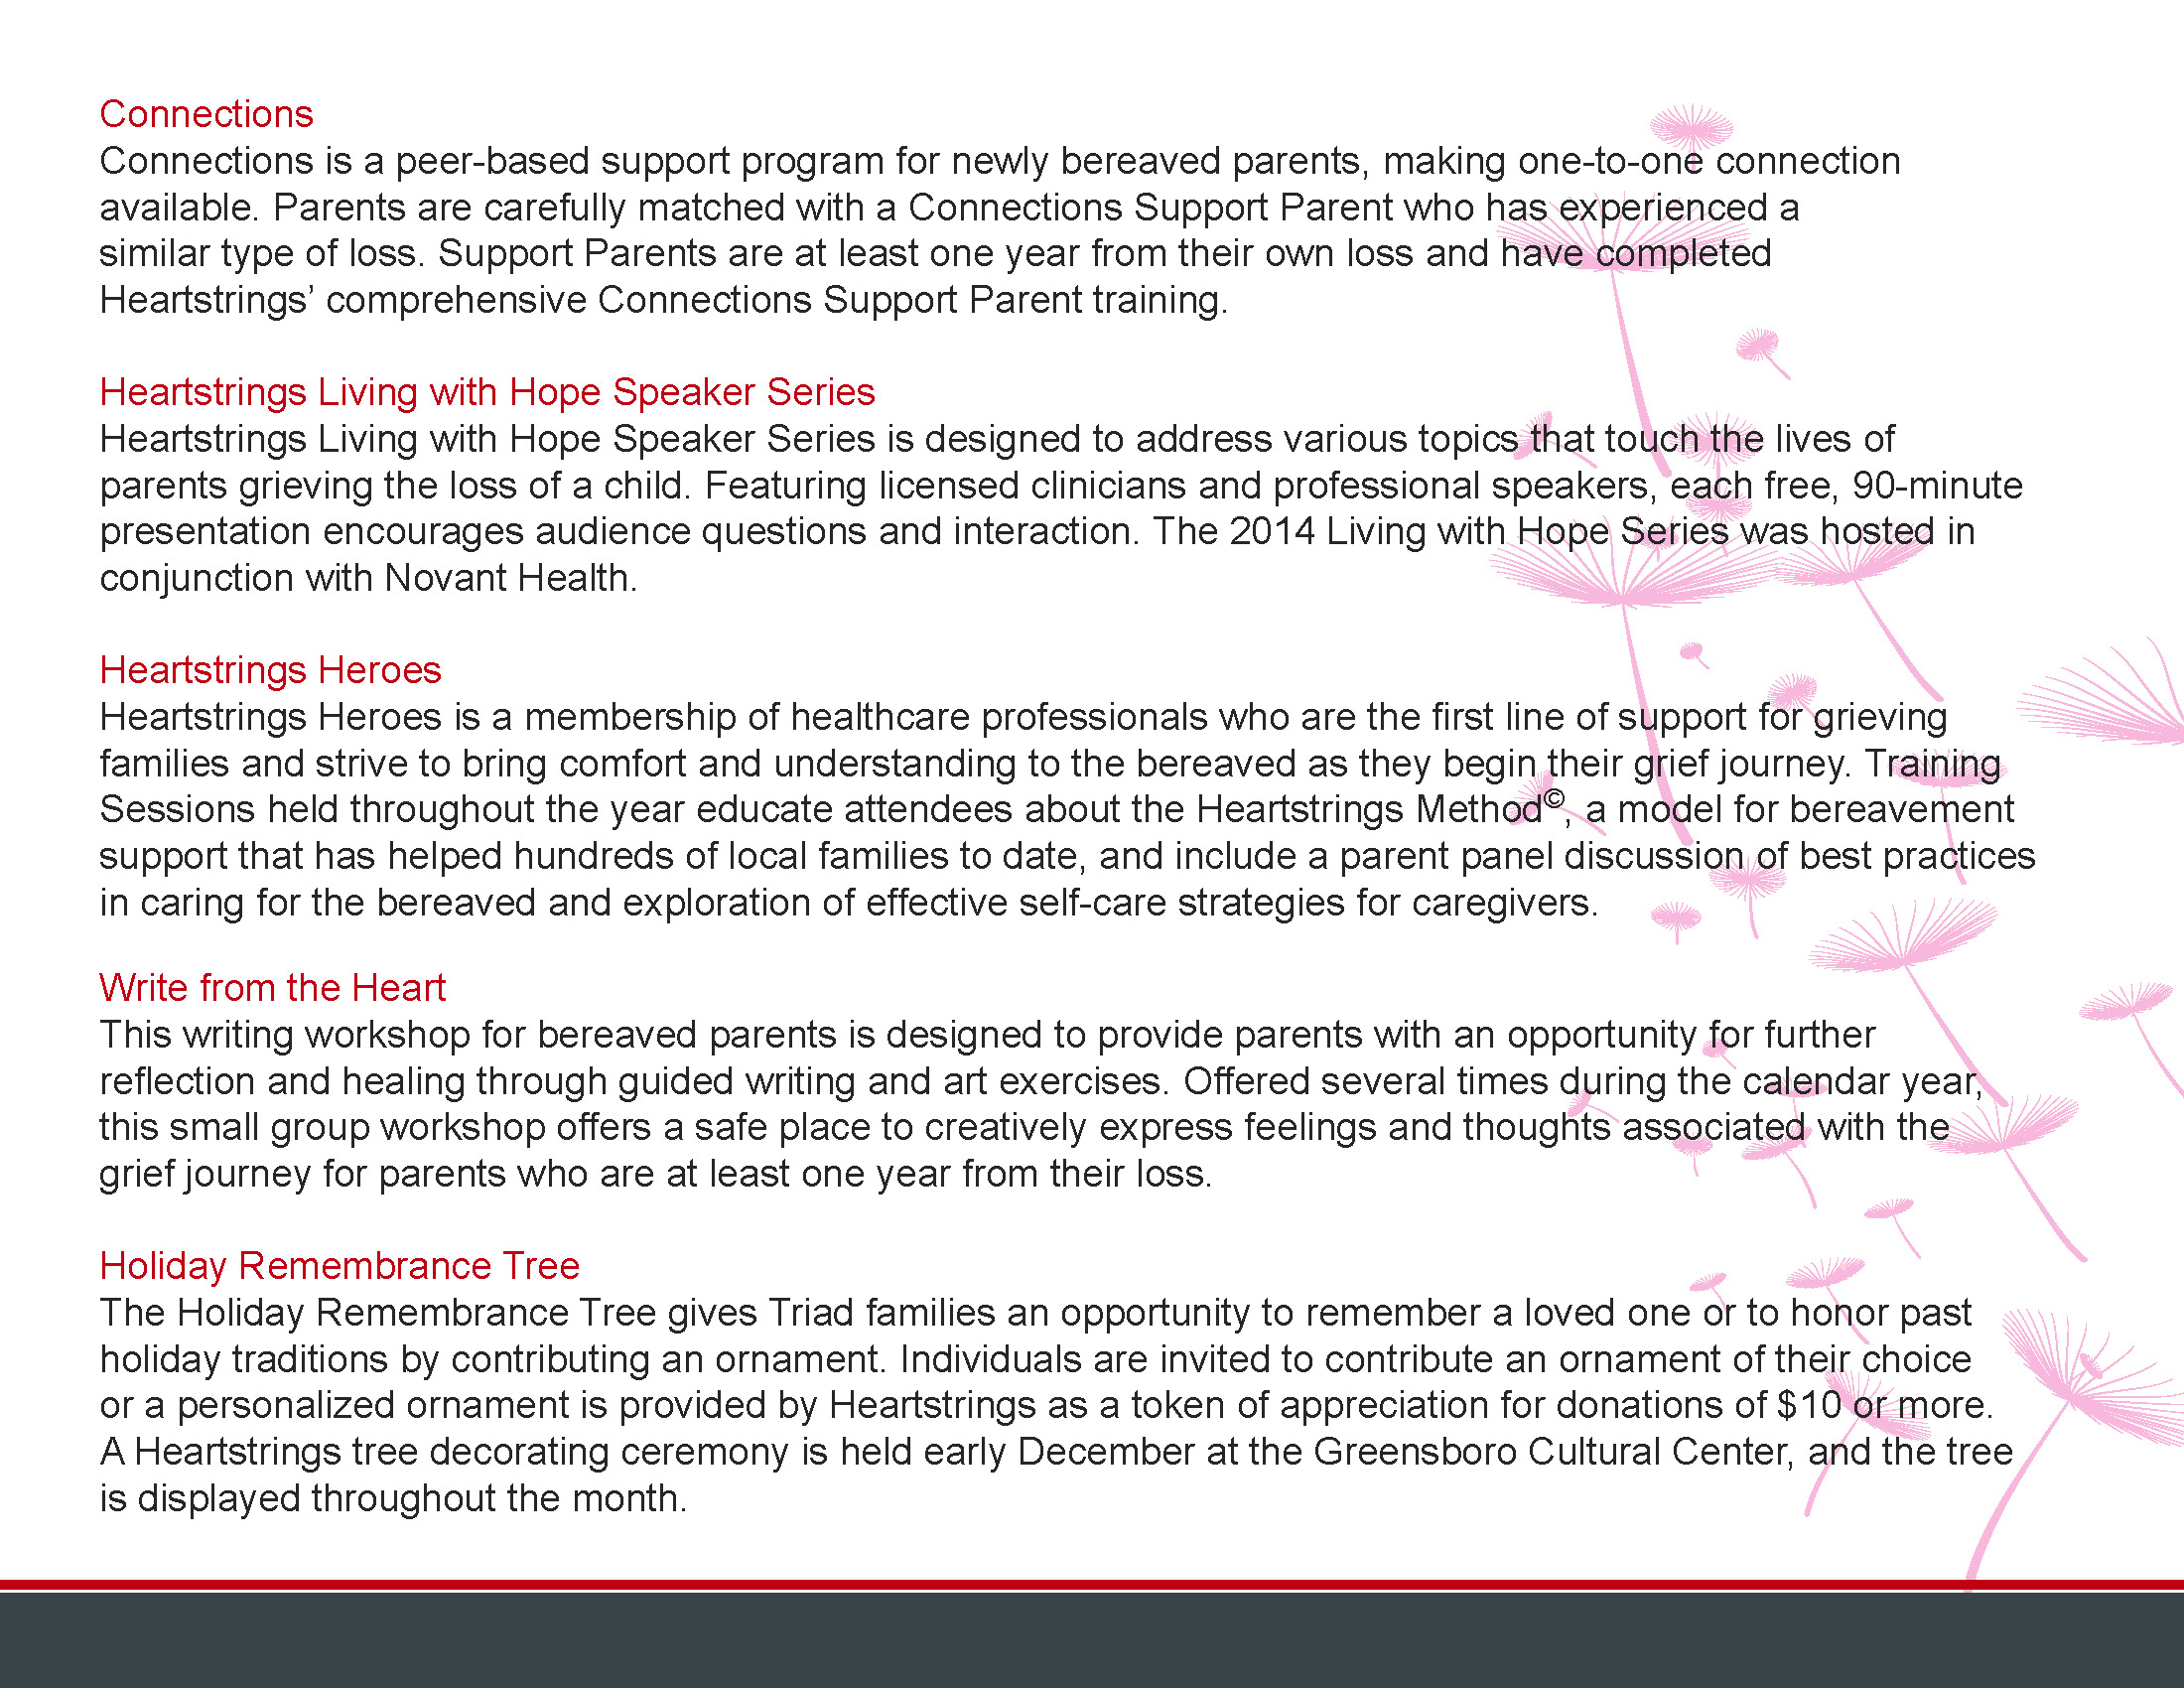 Heartstring Annual Report_Page_10.jpg